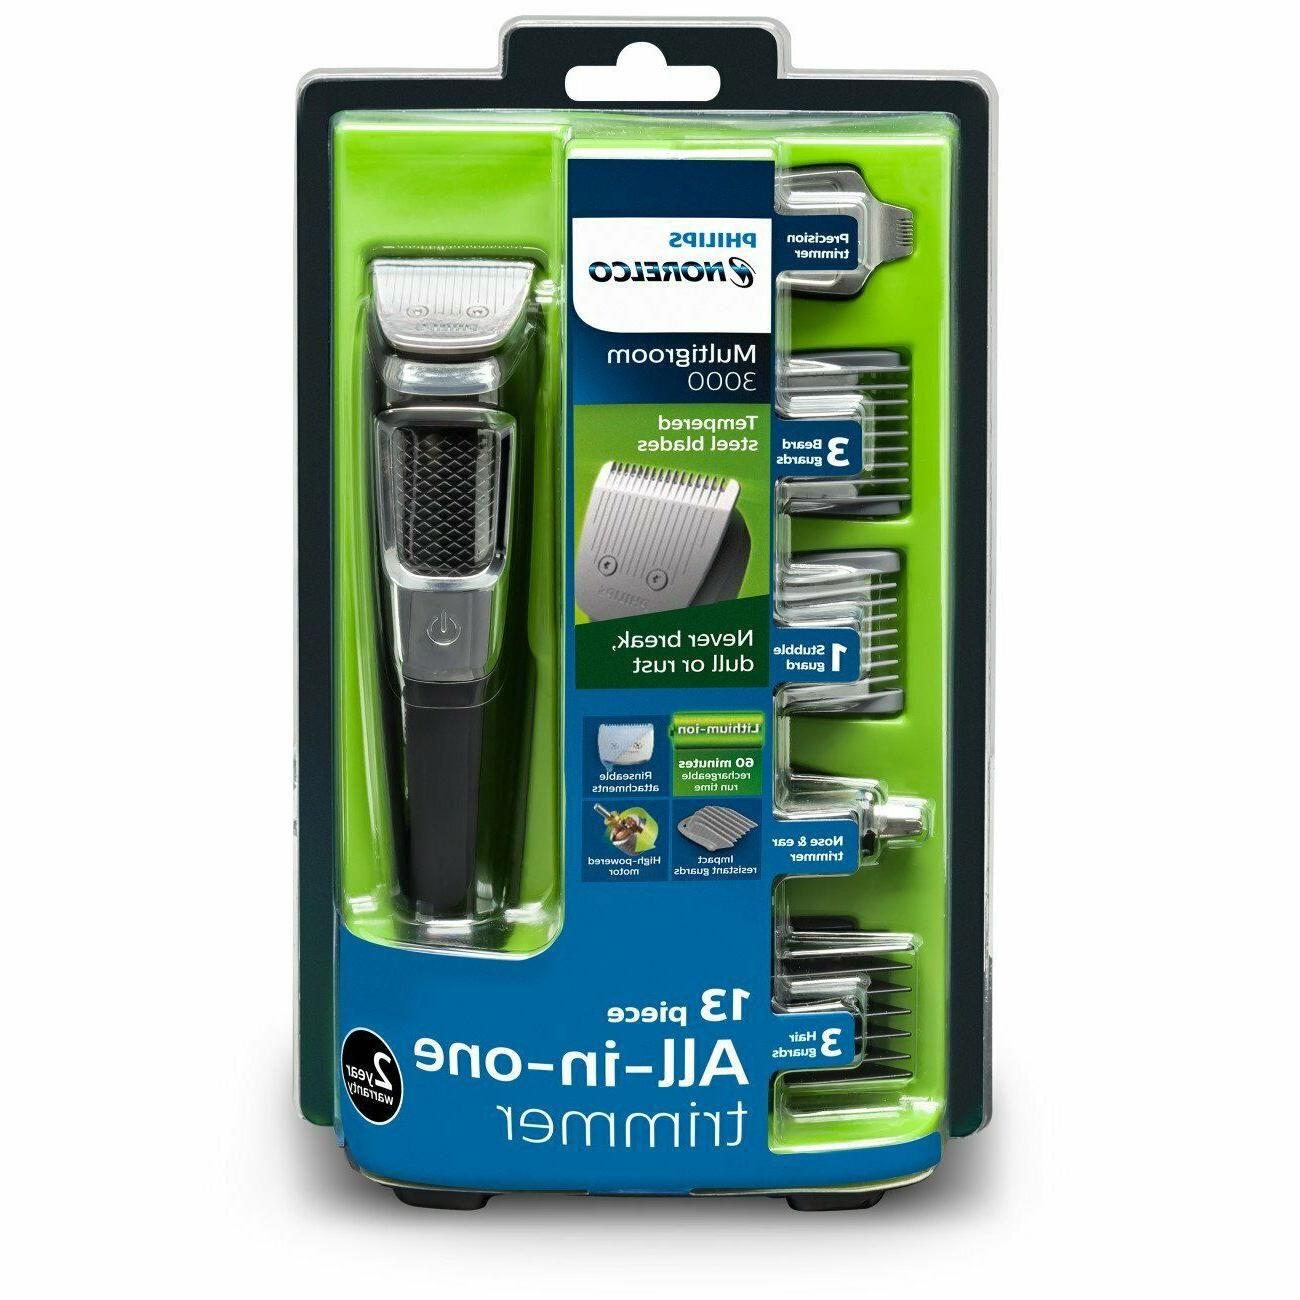 Philips Norelco MG3750 Series attachment beard New